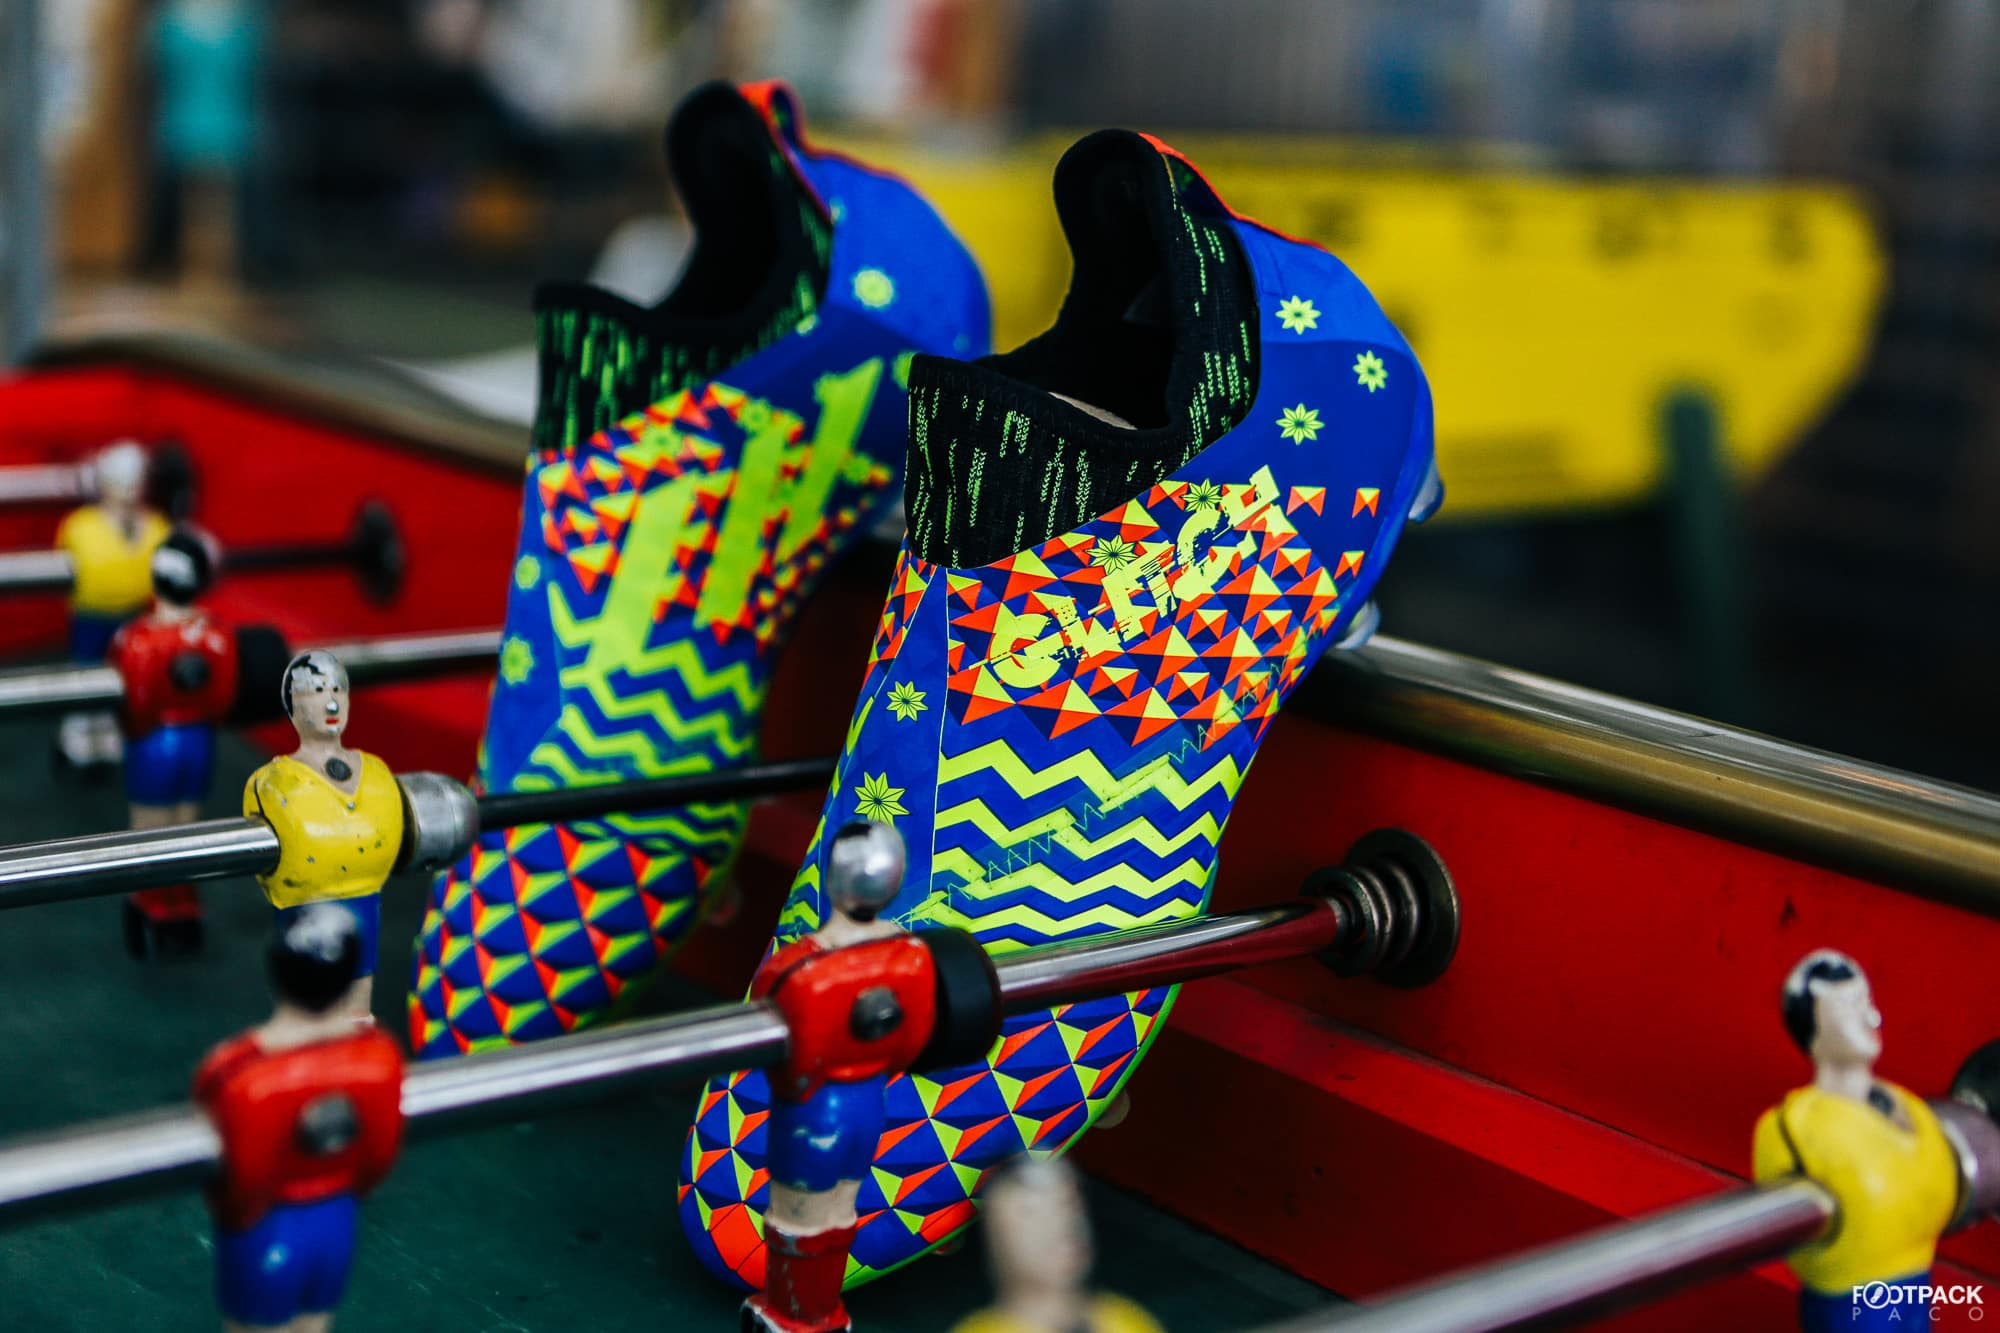 Chaussures-football-adidas-glitch-18-2-0-Worldskin-France-Coupe-Monde-Juin-2018-3